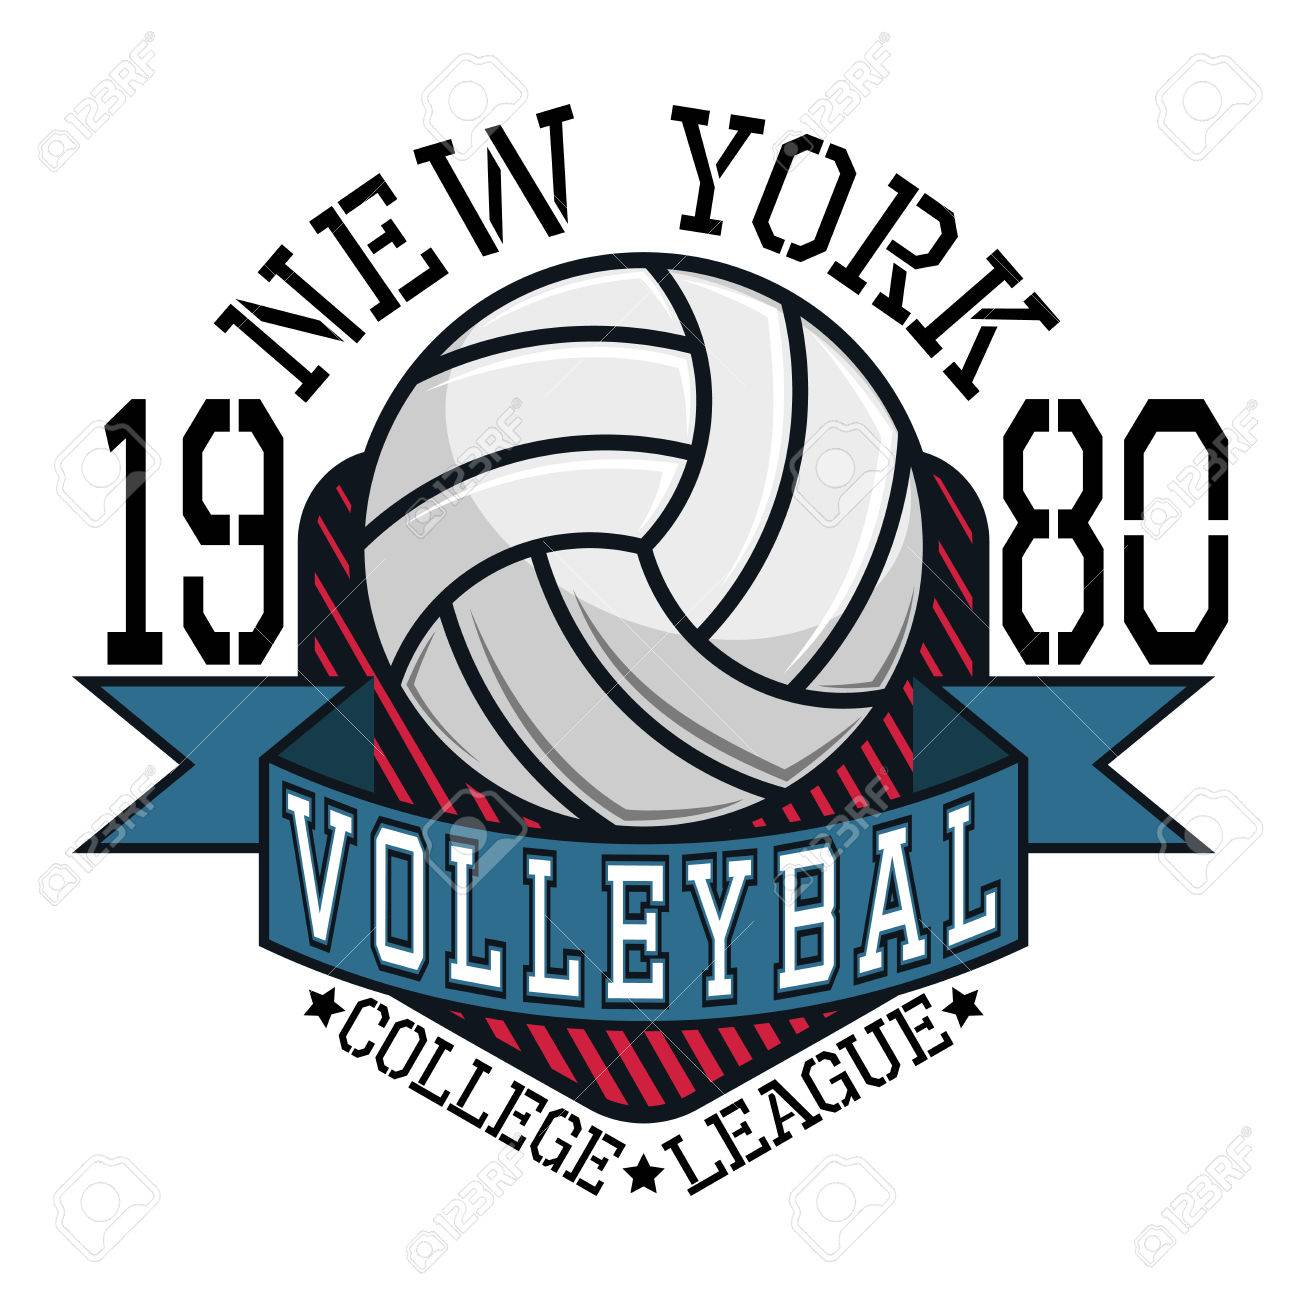 volleyball college league new york team t shirt typography graphics rh 123rf com